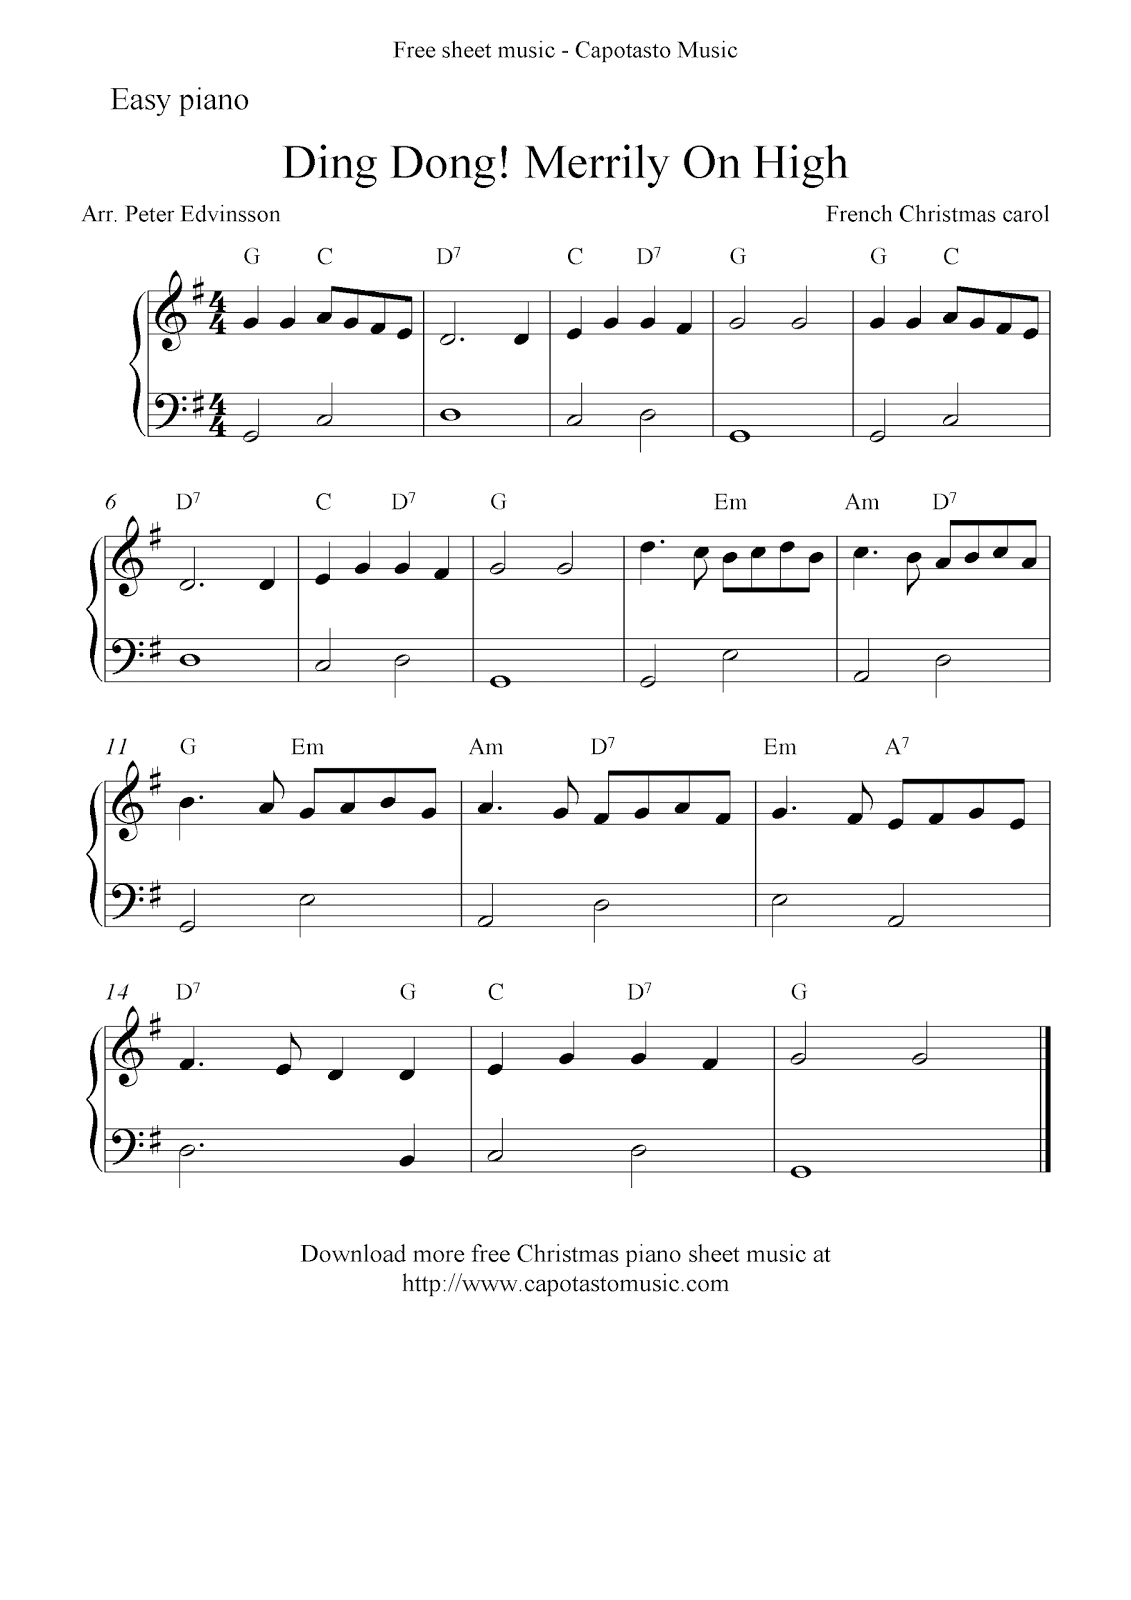 Free Sheet Music Scores: Free Christmas sheet music for easy piano, Ding Dong! Merrily On High ...